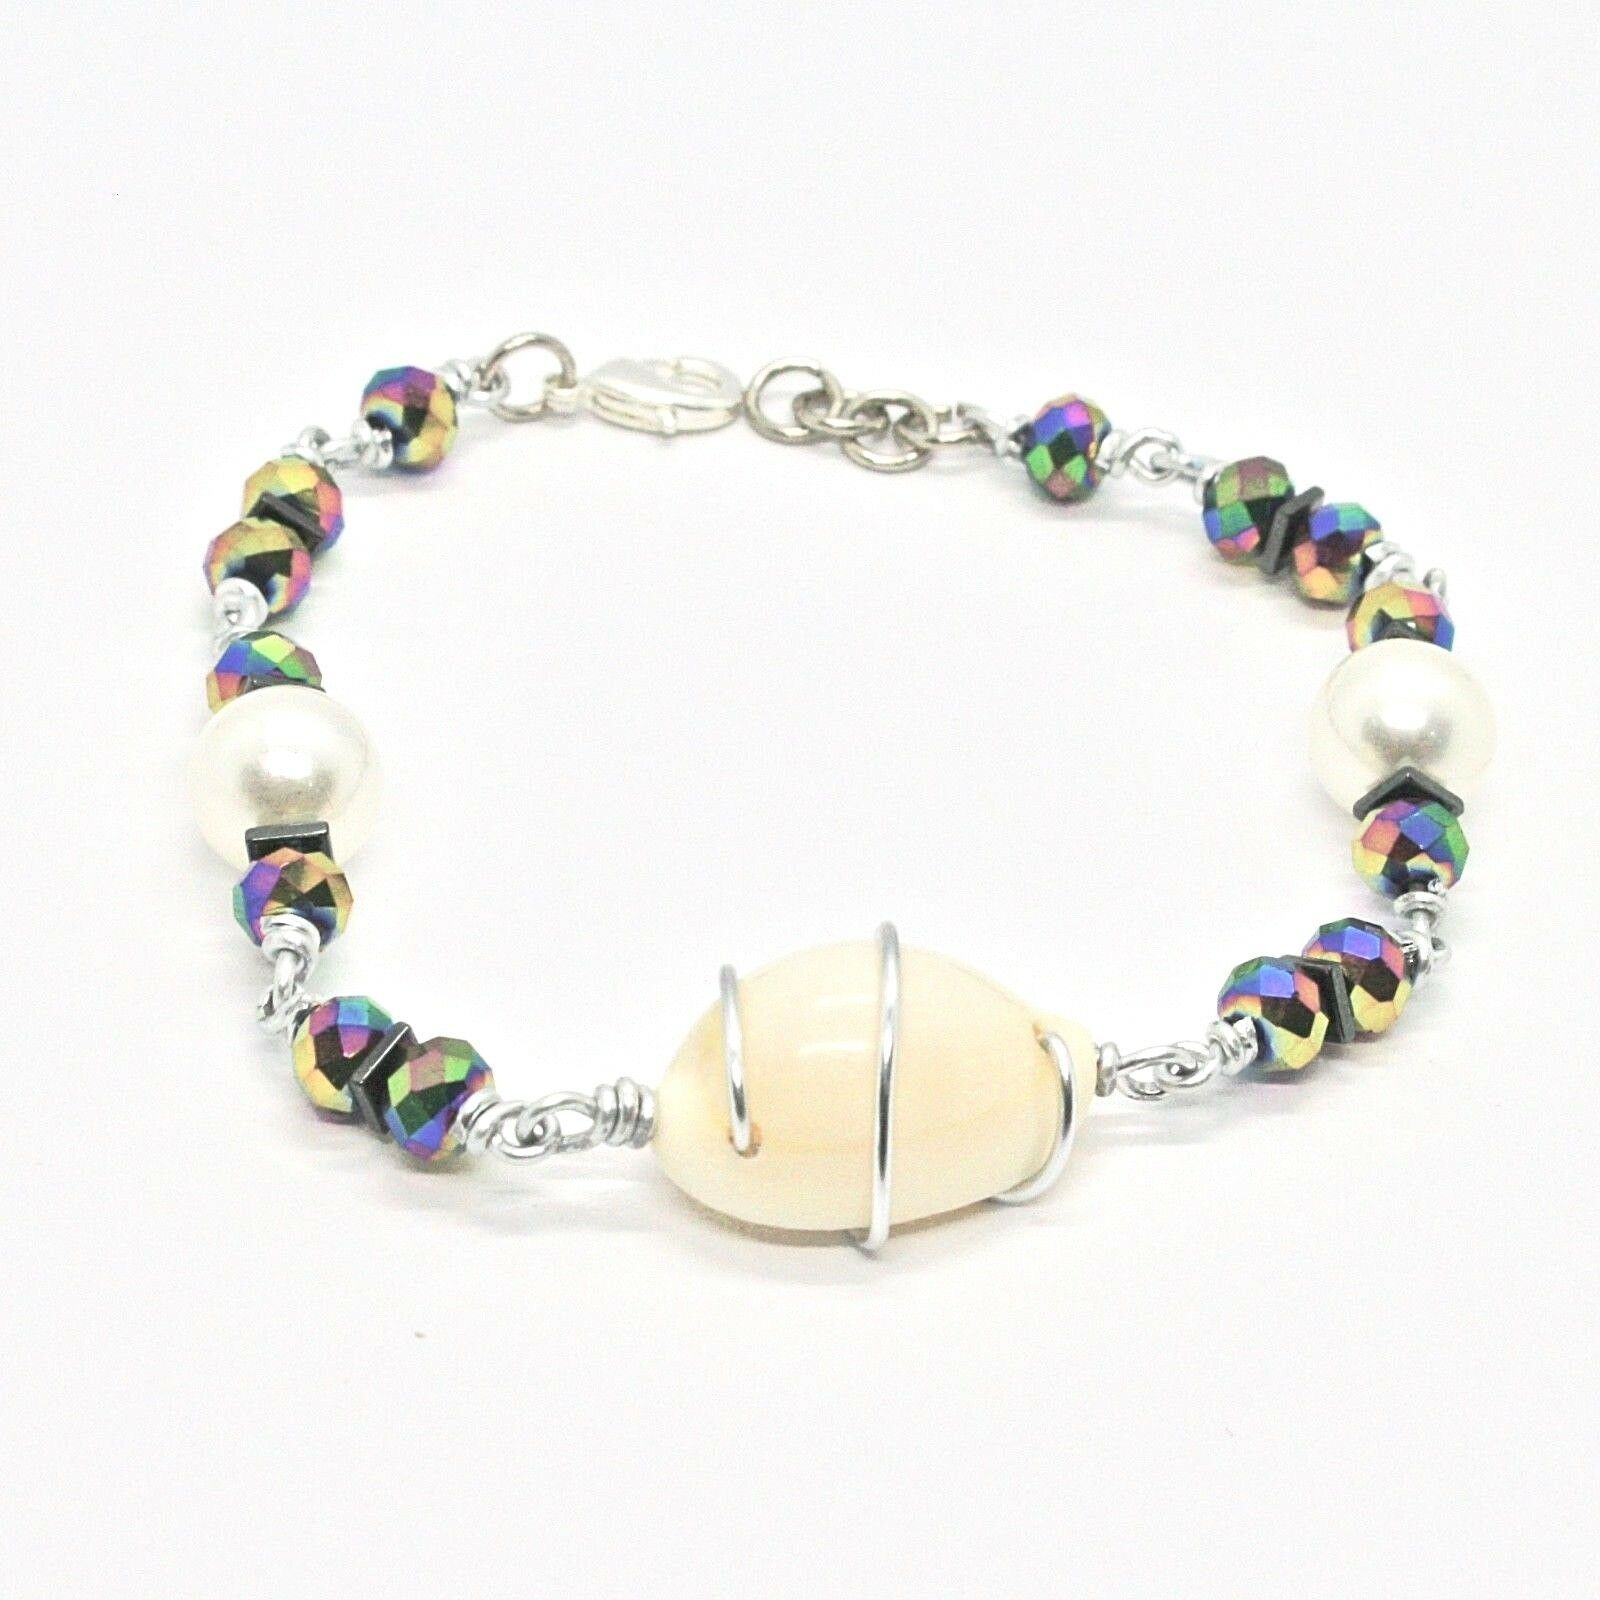 Bracelet the Aluminium Long 20 Inch with Shell Hematite & Pearl